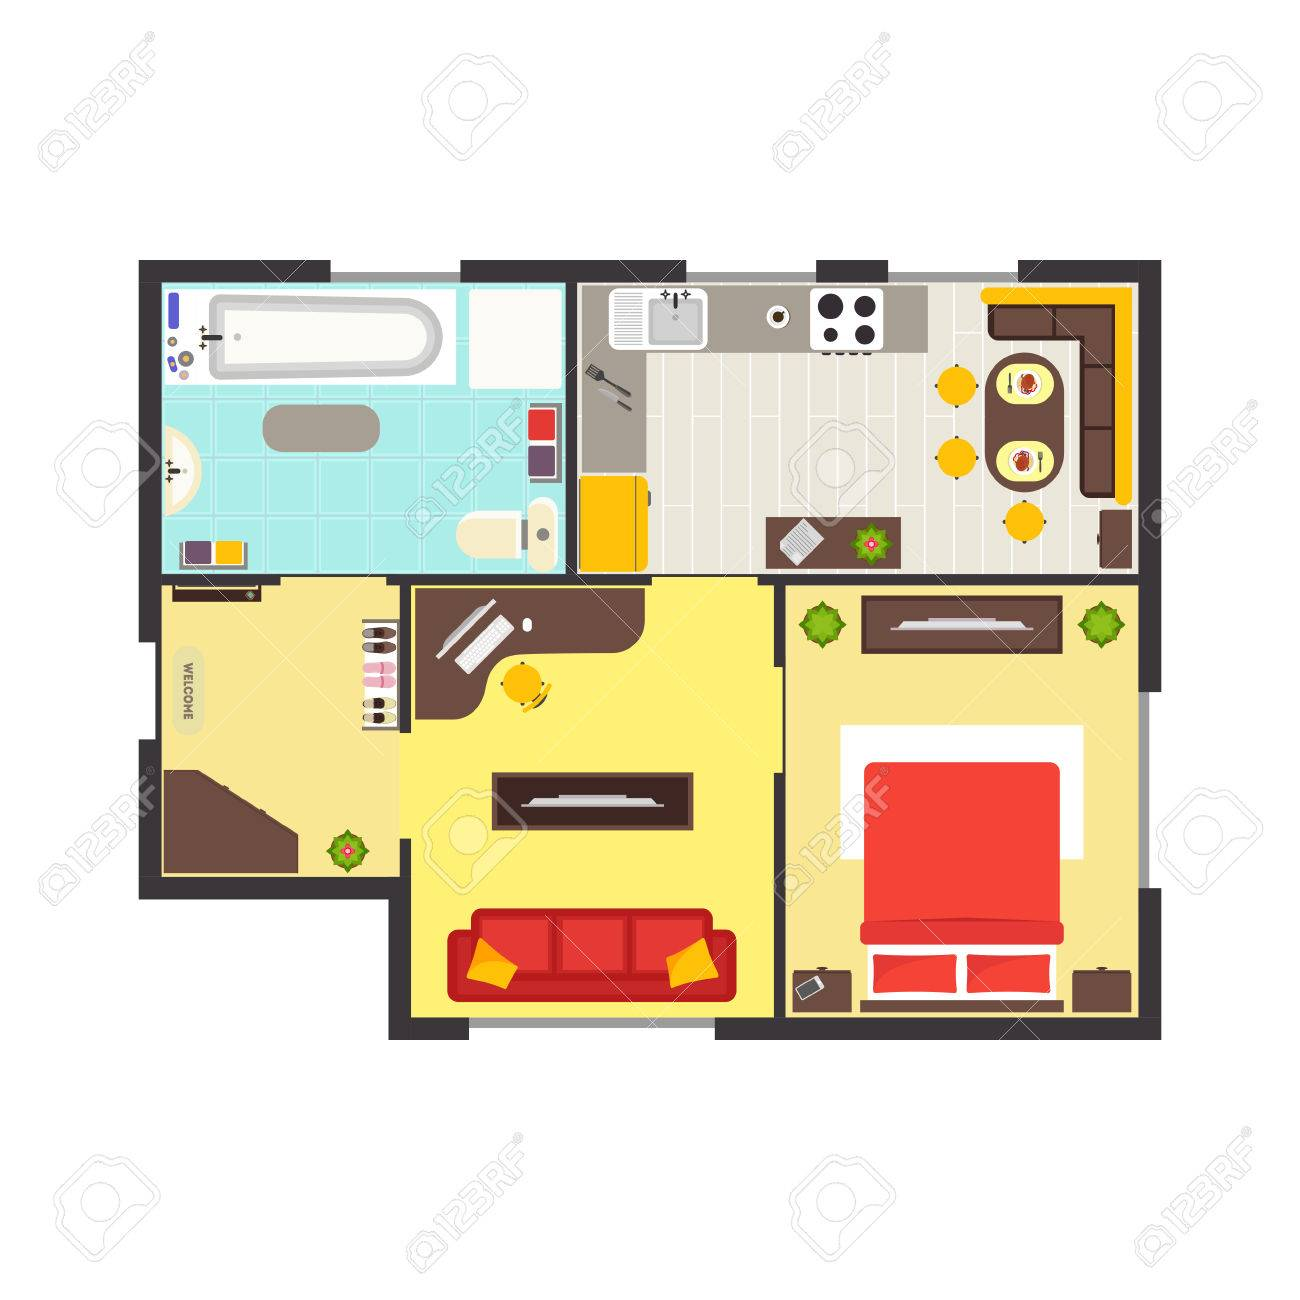 apartment floor plan with furniture top view colorful floorplan rh 123rf com